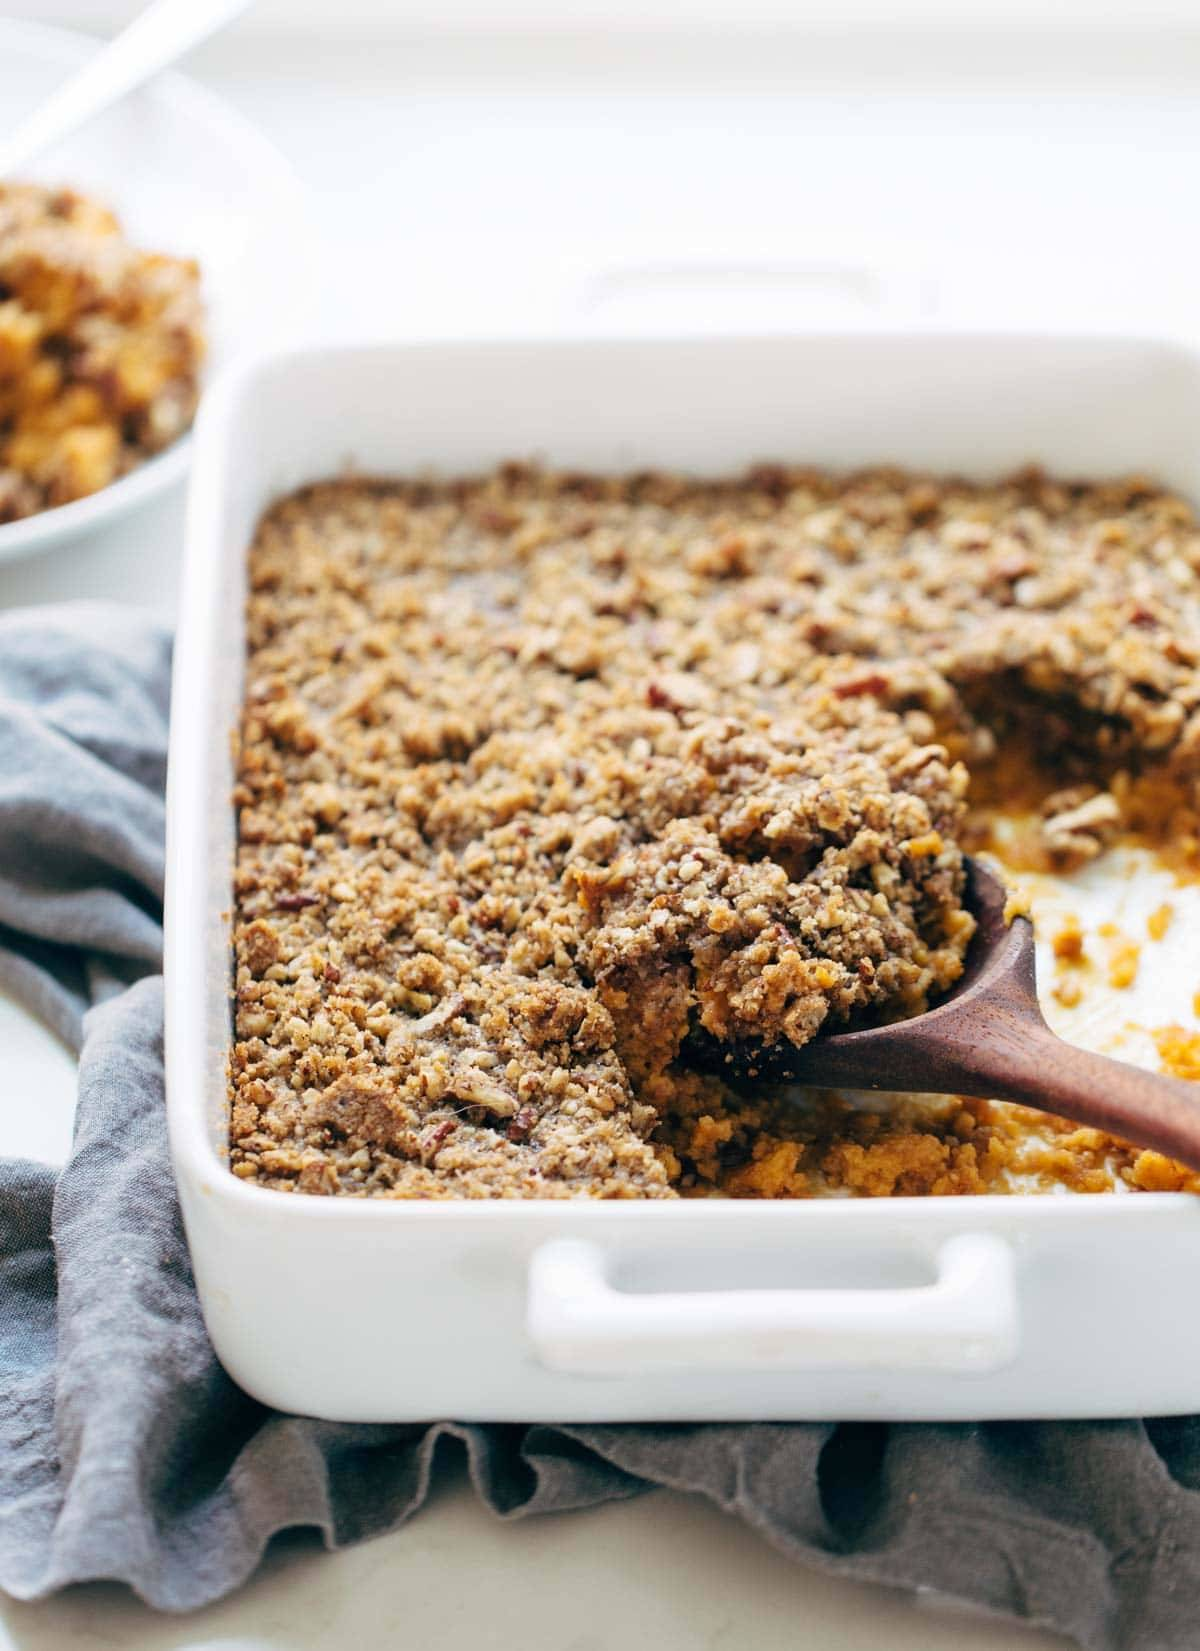 Sweet Potato Casserole with a crunchy brown sugar topping in a dish with a wooden spoon.